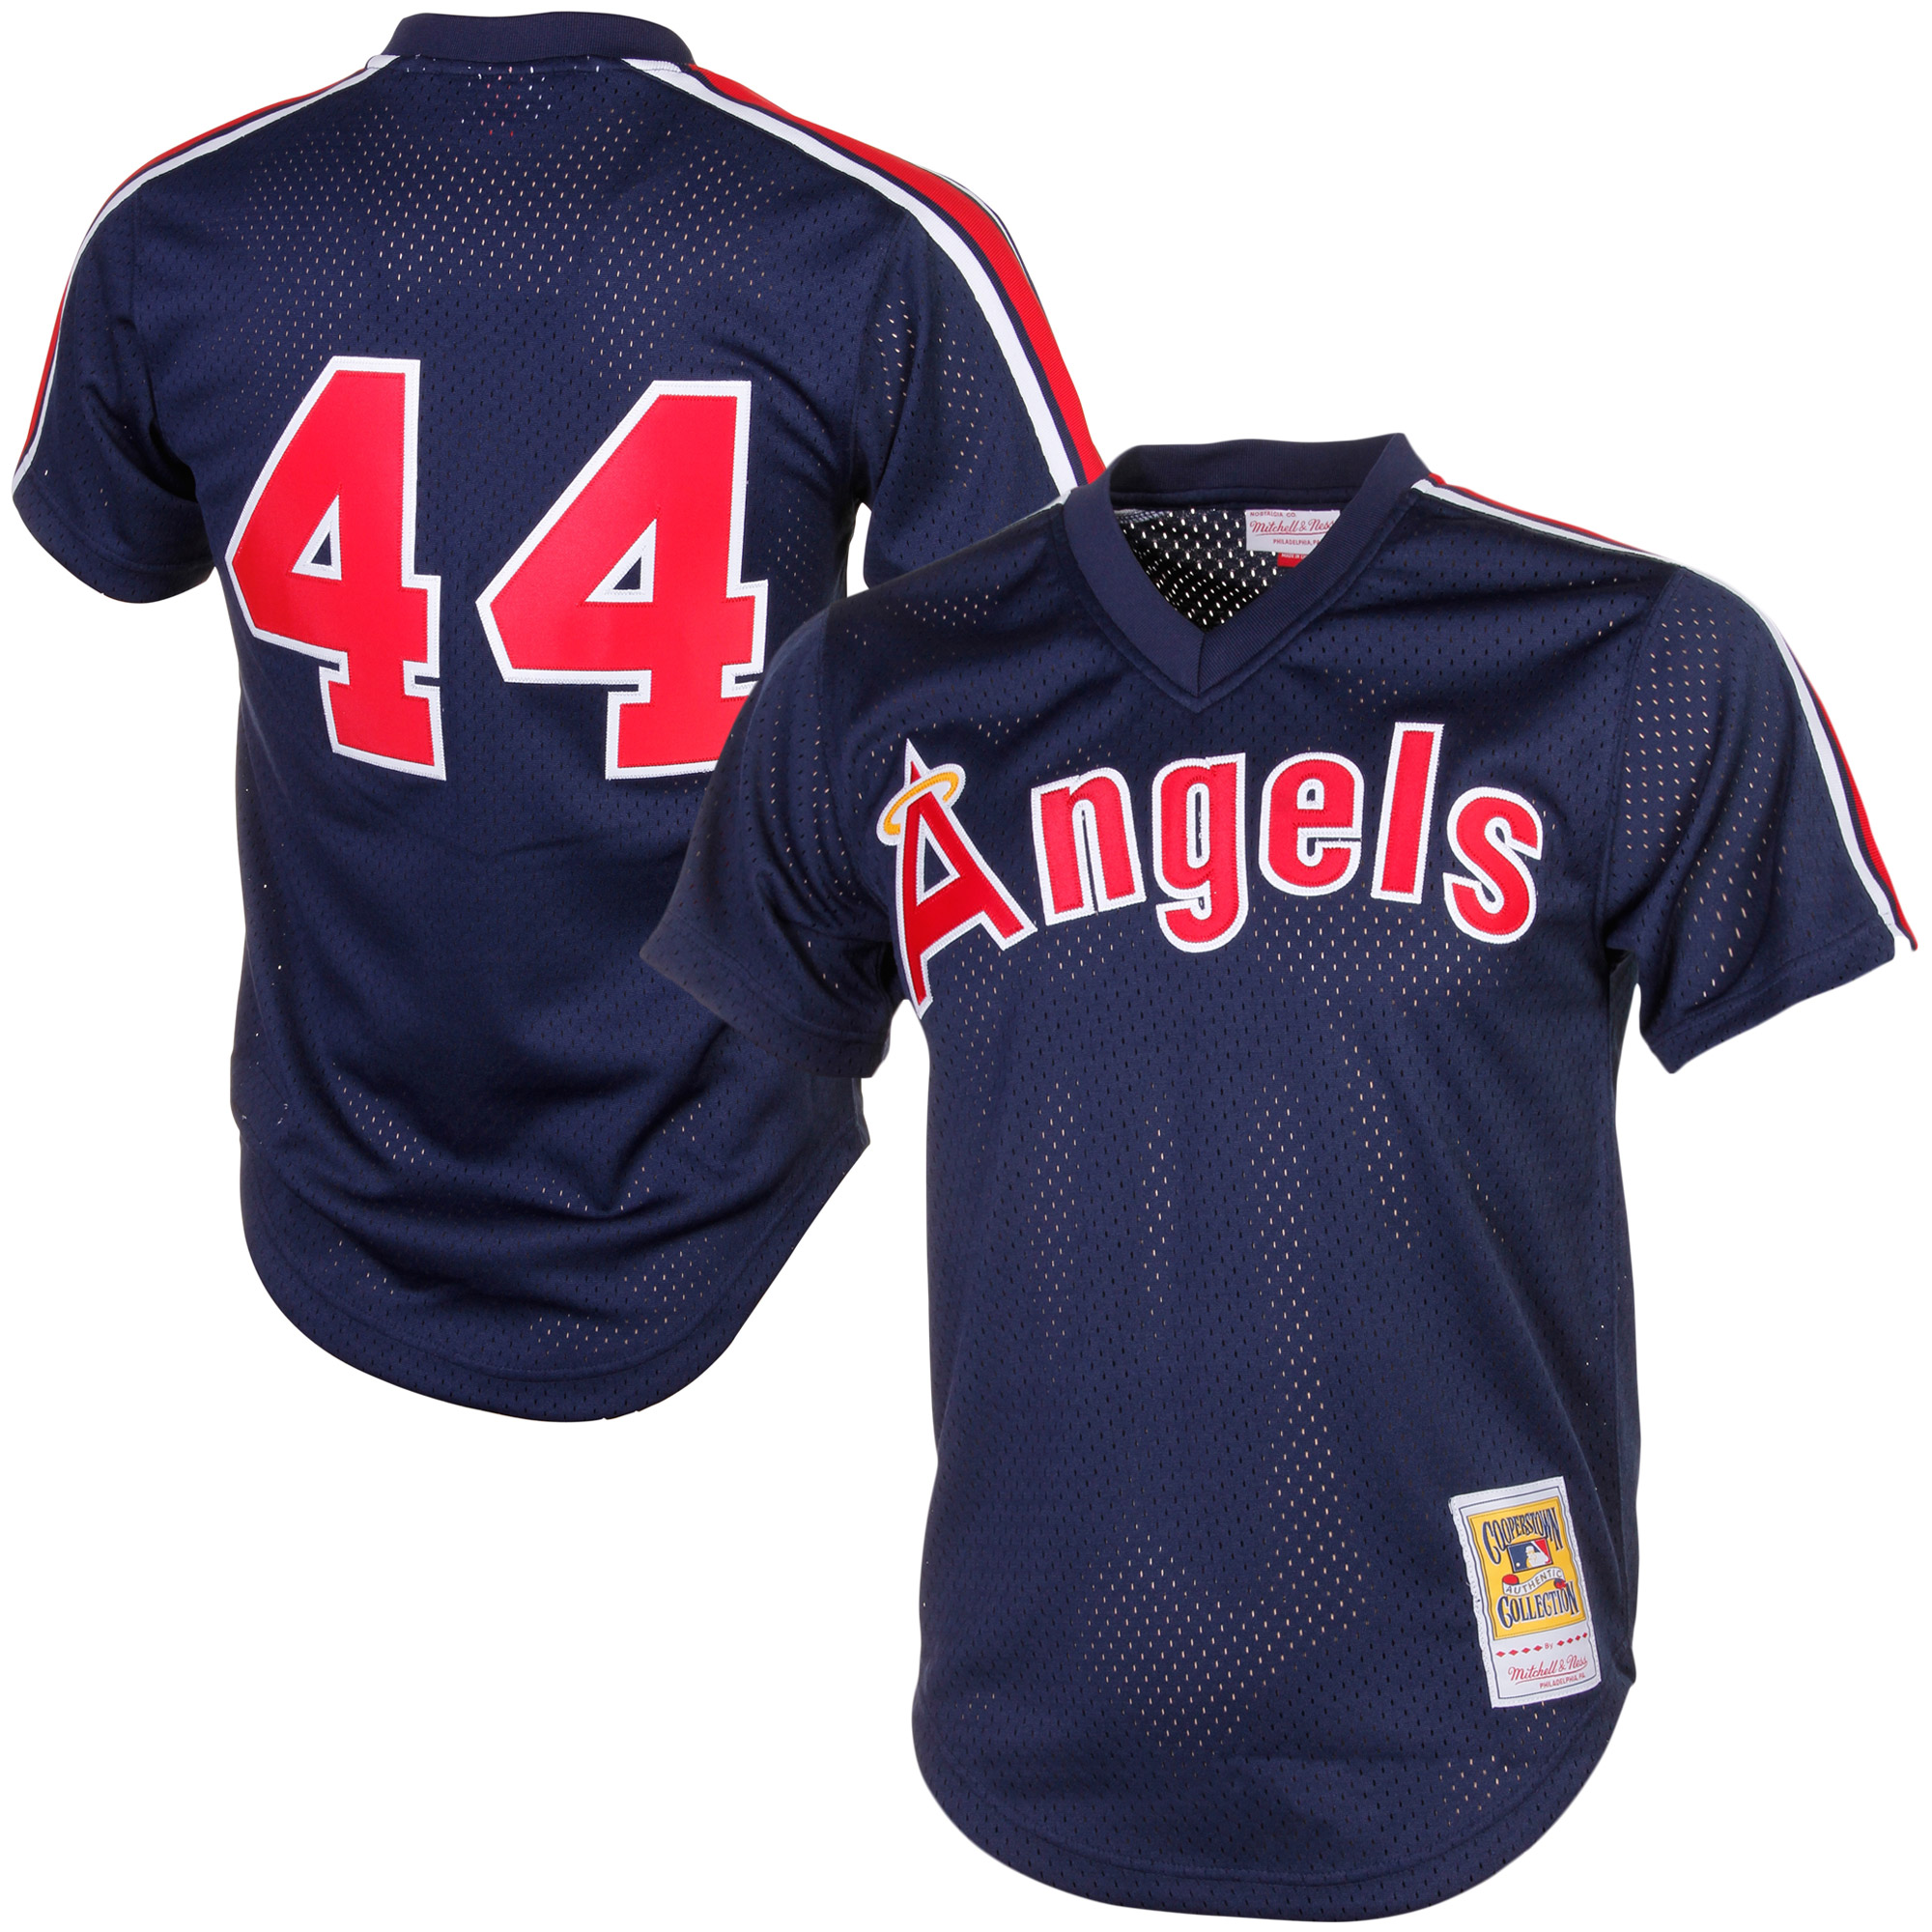 Reggie Jackson California Angels Mitchell & Ness Cooperstown Mesh Batting Practice Jersey - Navy